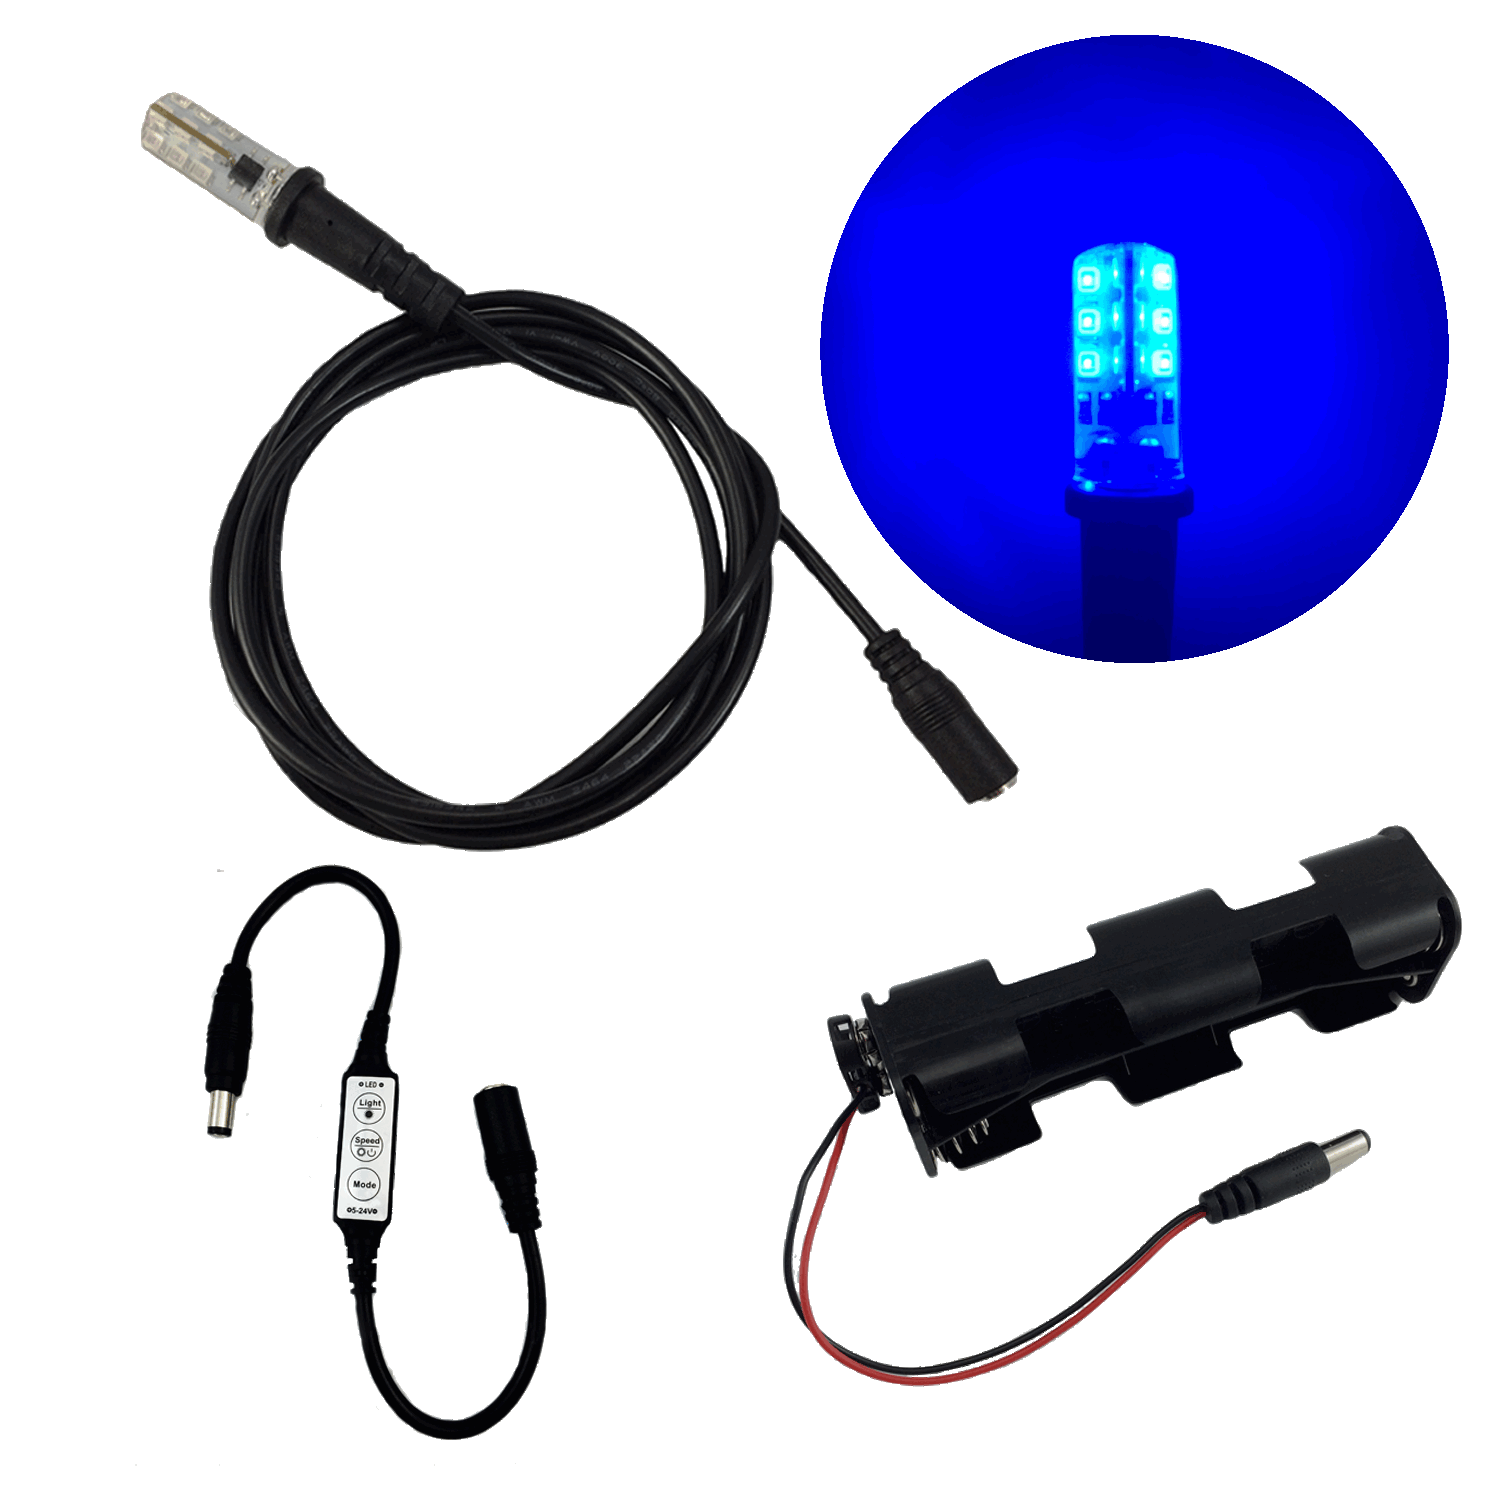 eel enhanced effects light blue led light kit 5 foot cable socket micro effects dimmer. Black Bedroom Furniture Sets. Home Design Ideas